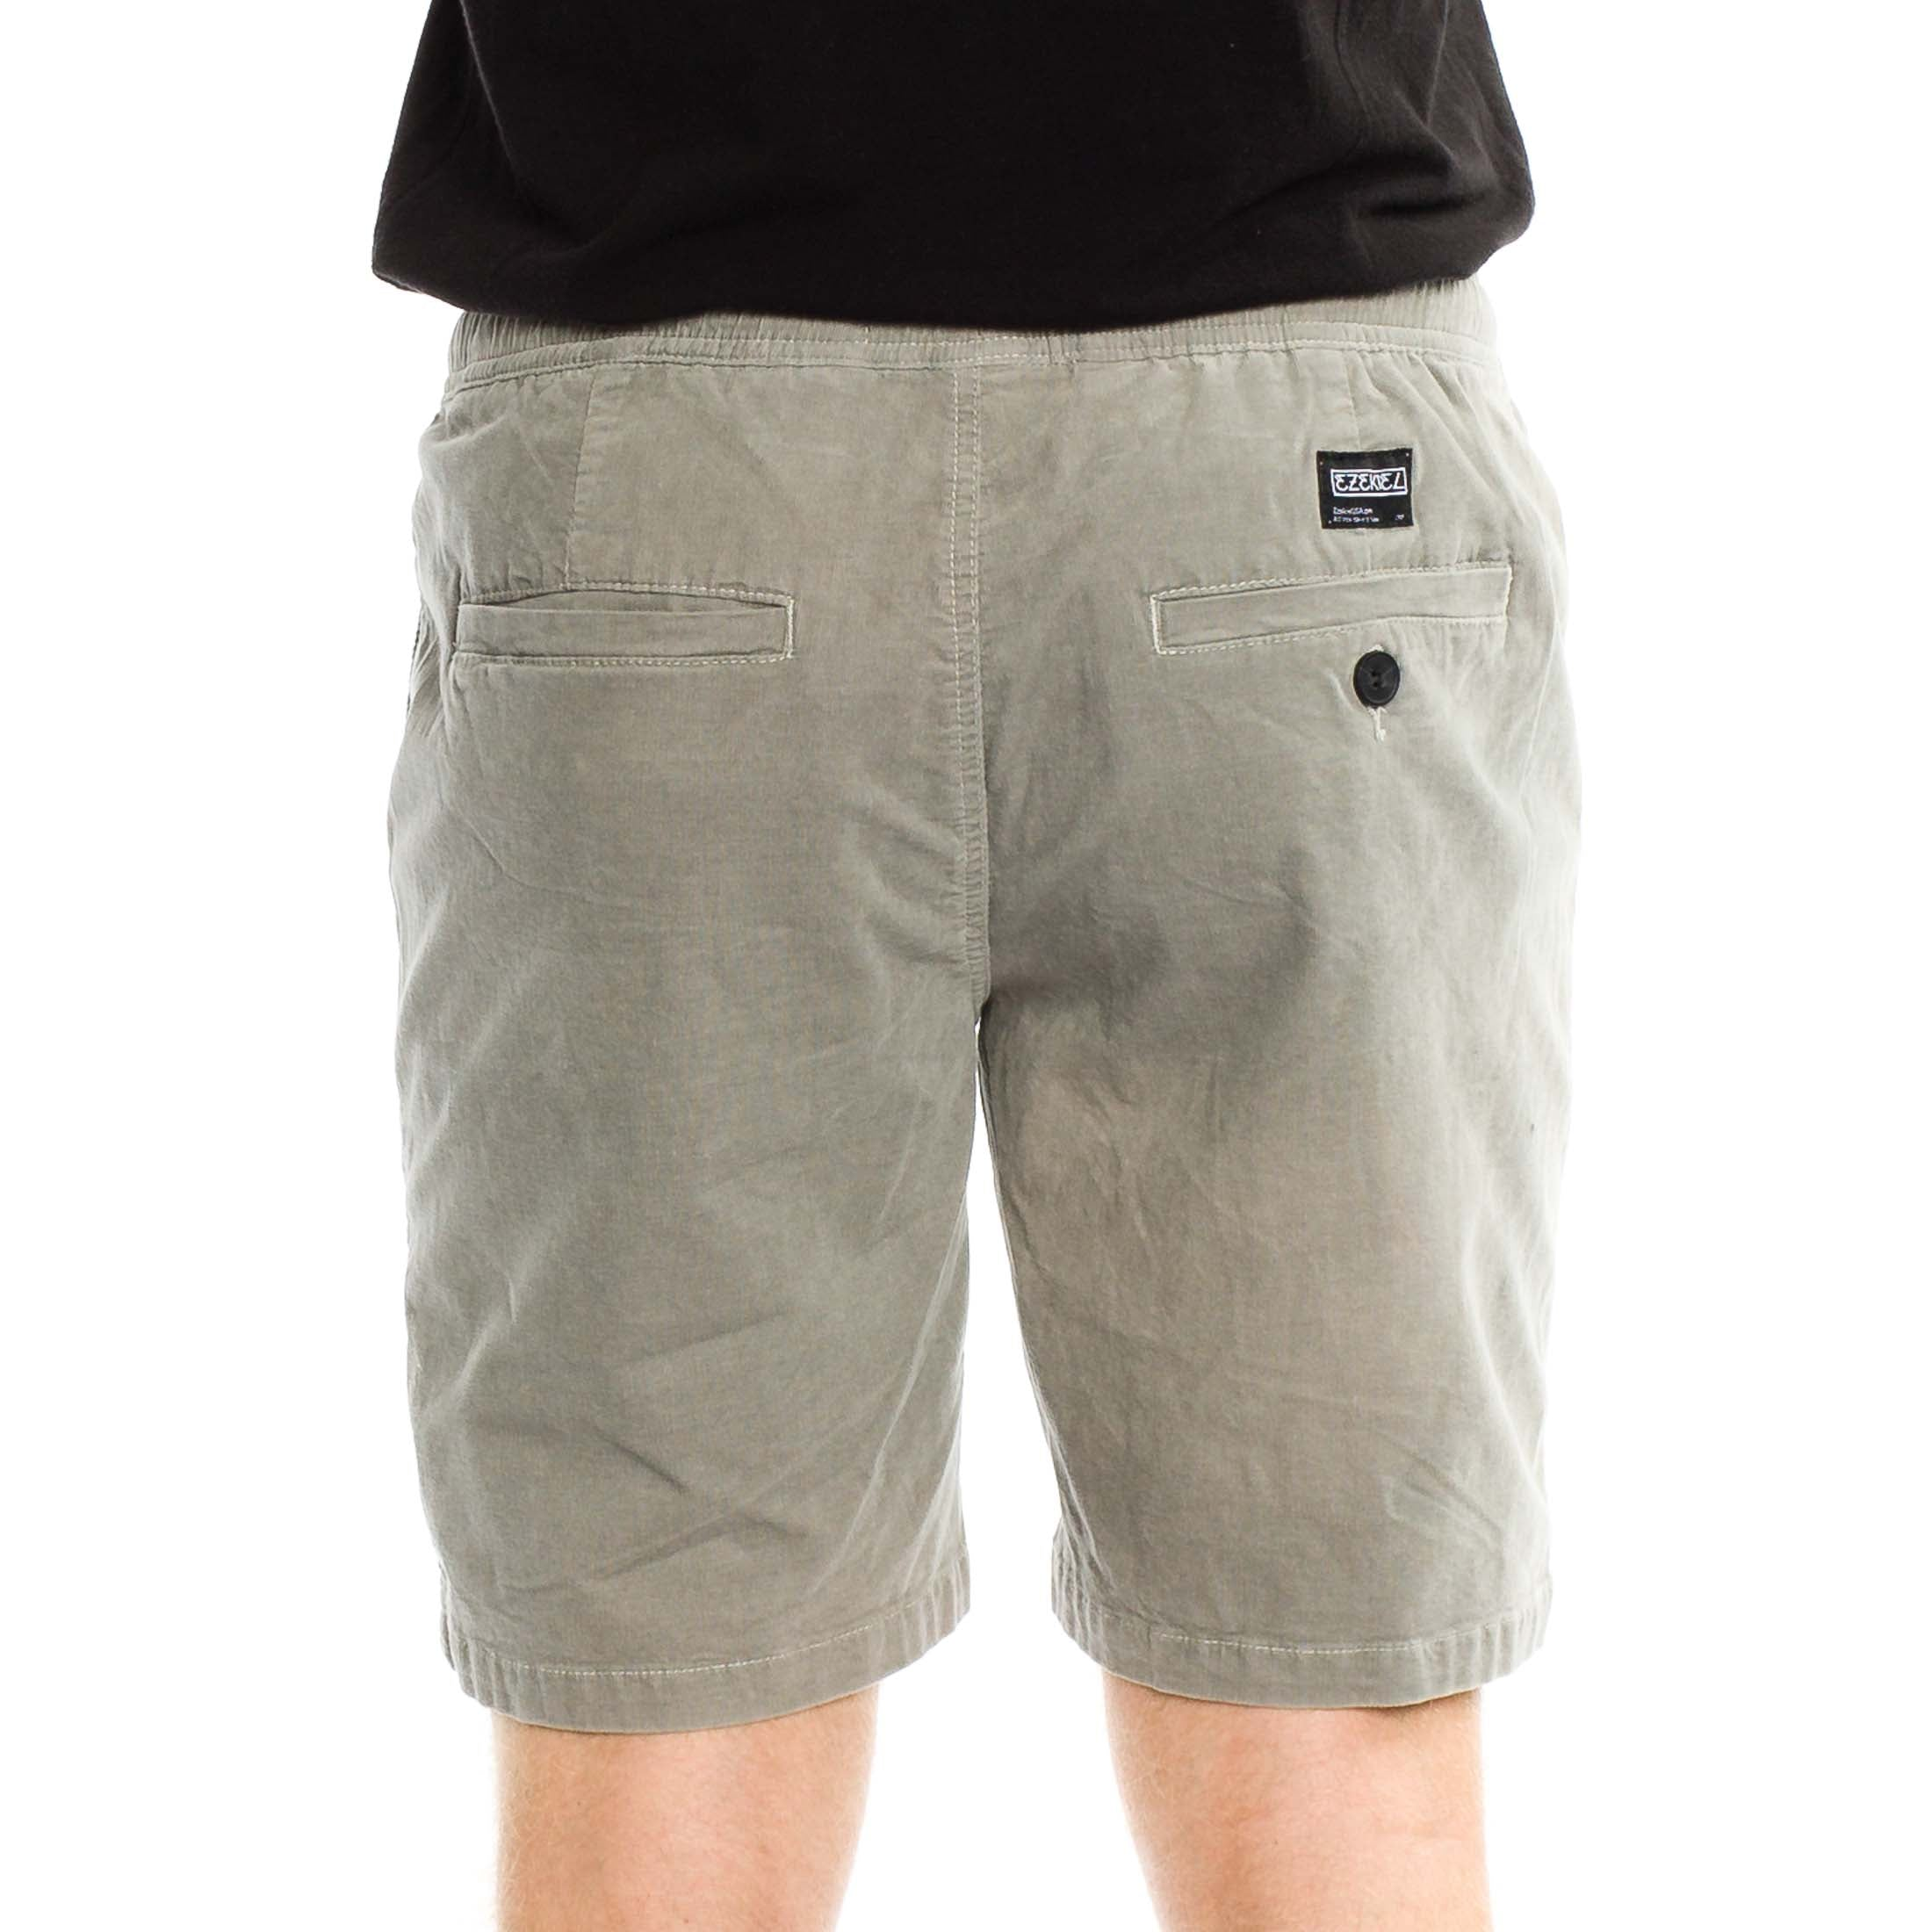 Johnson Short - Grey - Ezekiel Clothing